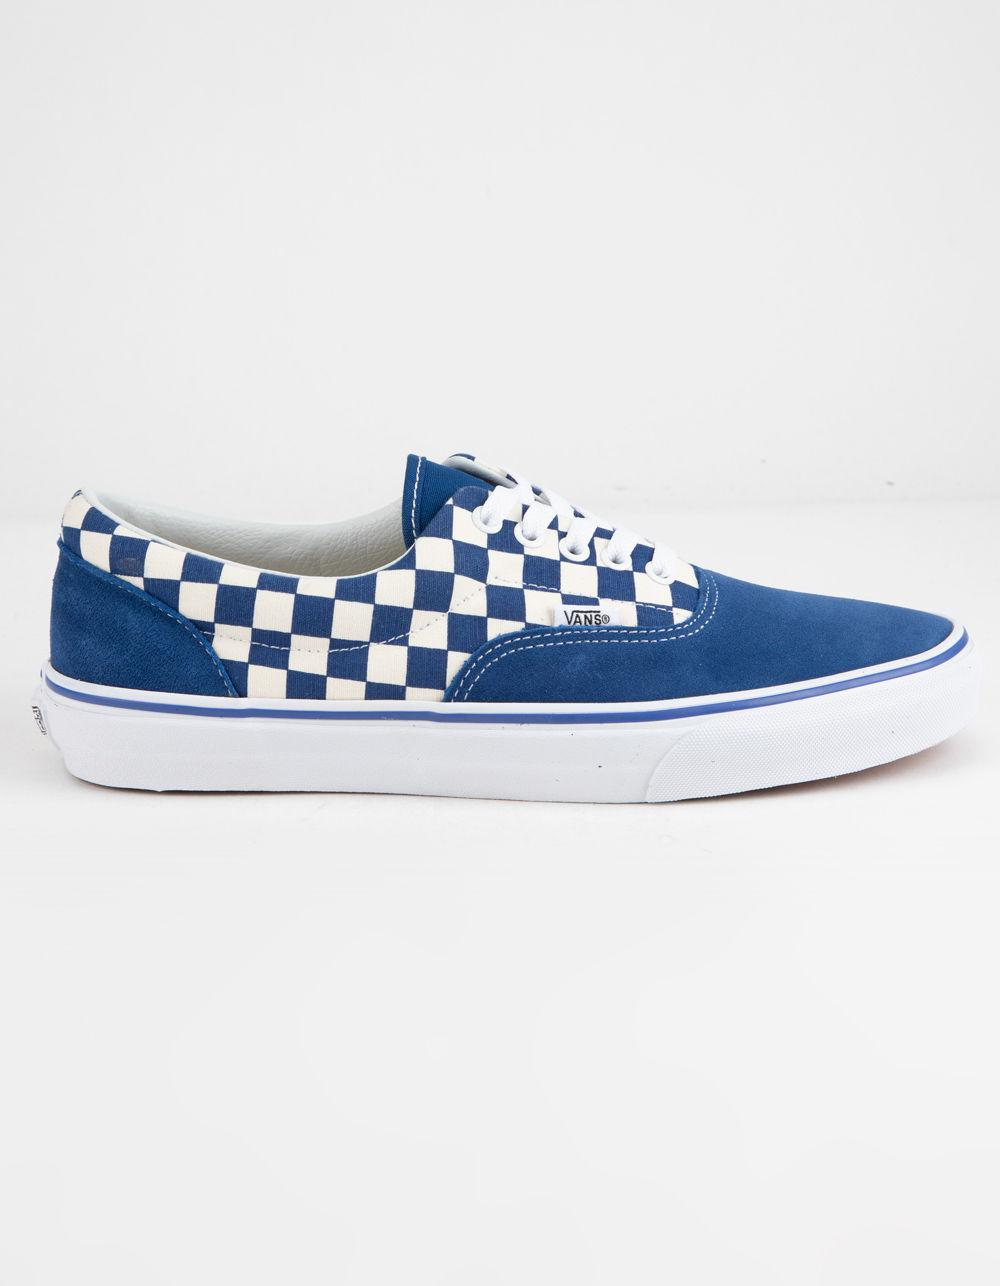 Lyst - Vans Primary Check Era True Blue   White Shoes in Blue - Save 2% 0ce6183e3